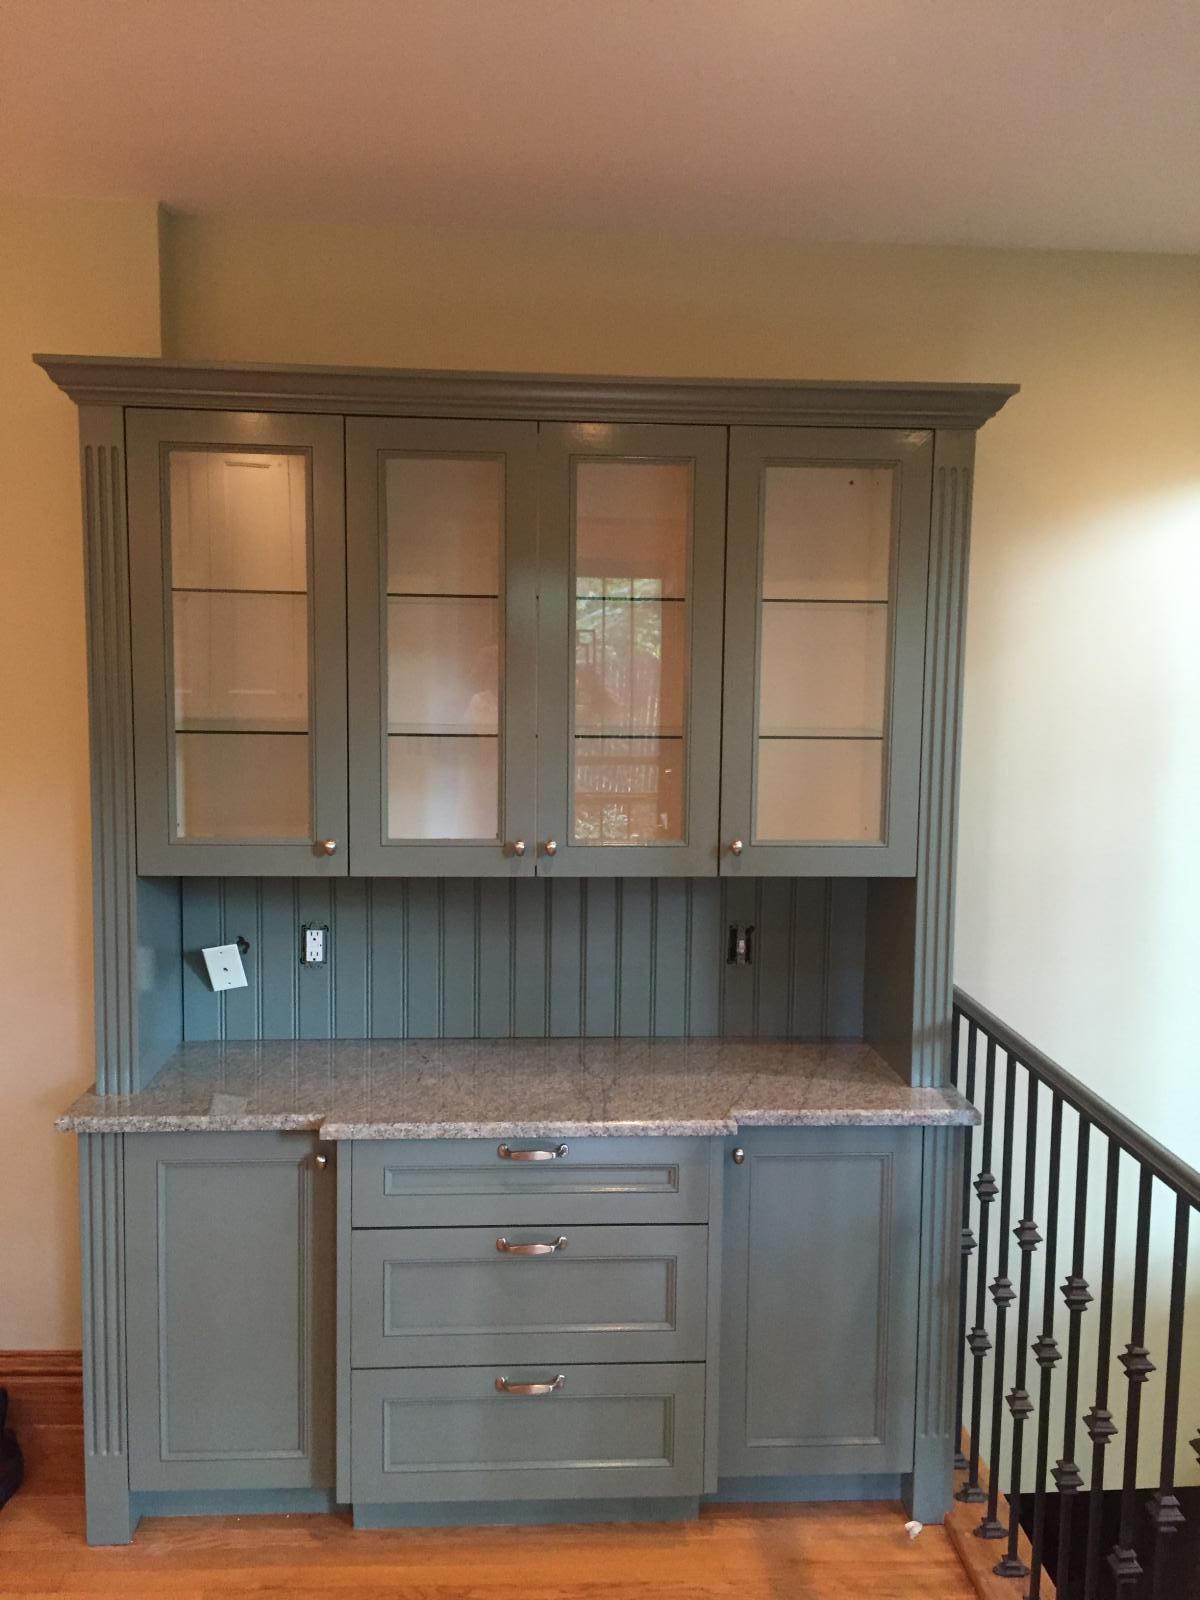 Repainted Cabinets · Refinished Woodwork